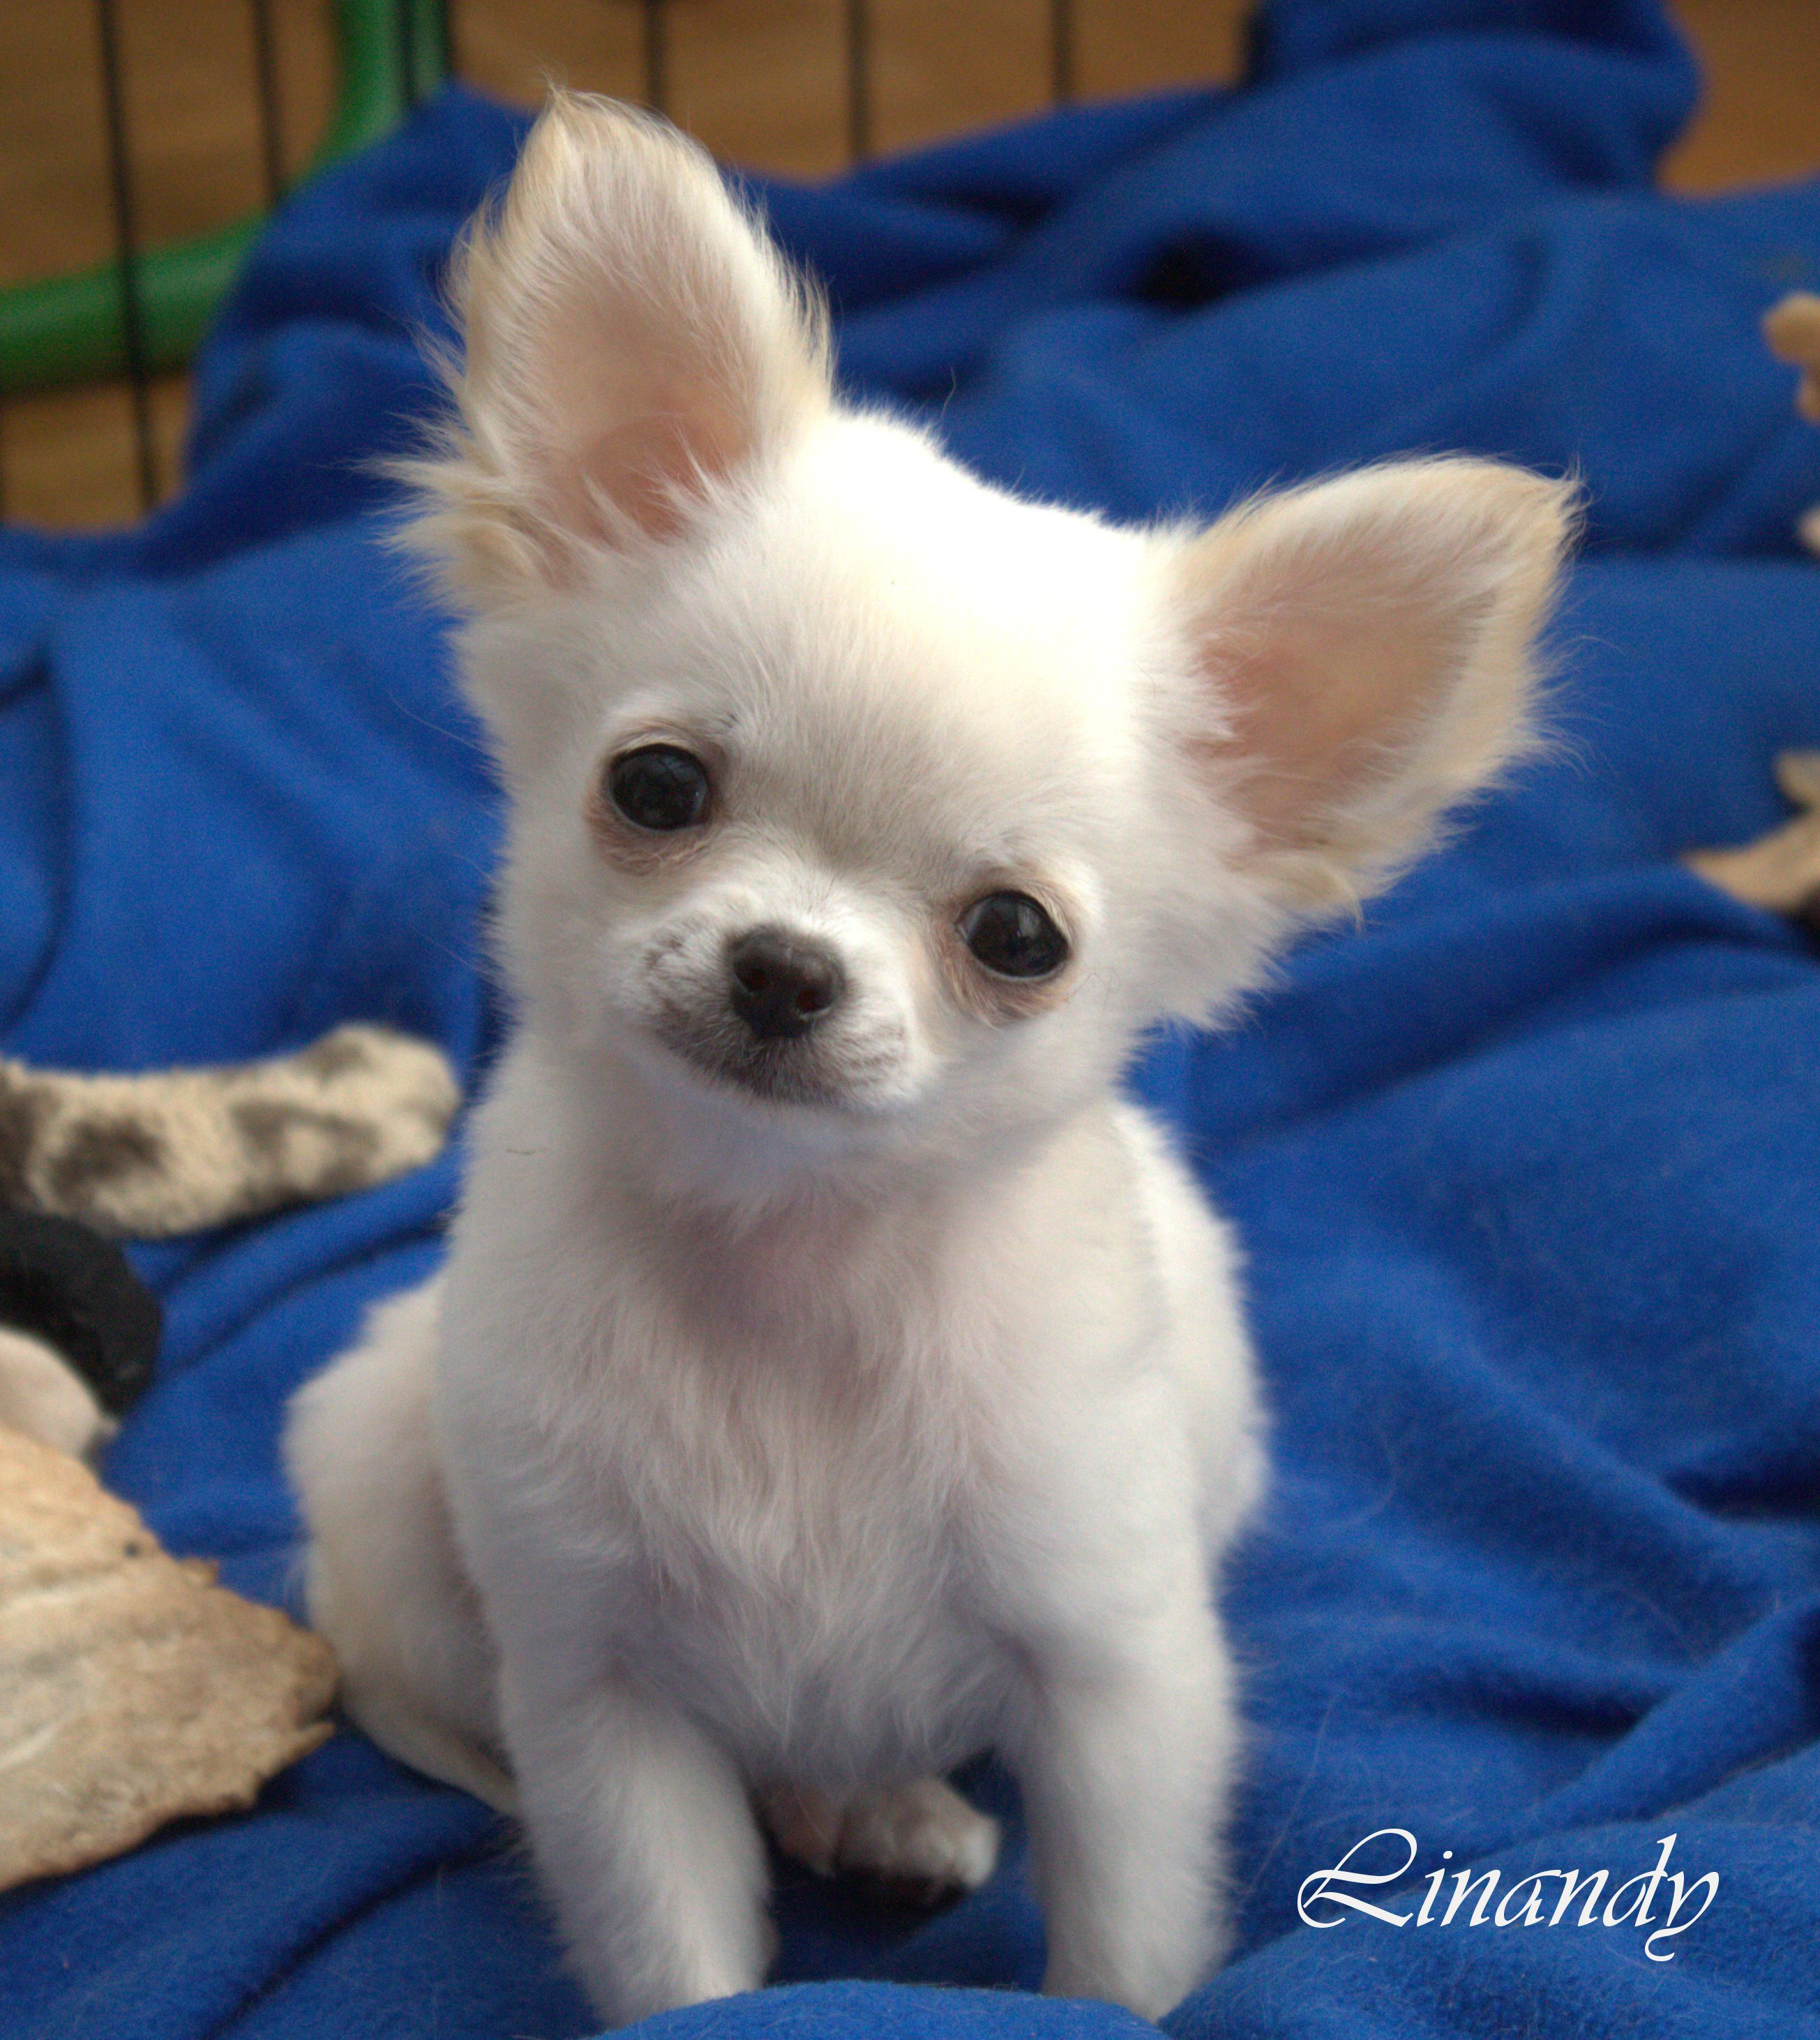 Jiminy My White Puppy Chihuahua Lustige Tiere Hundebaby Susse Hunde